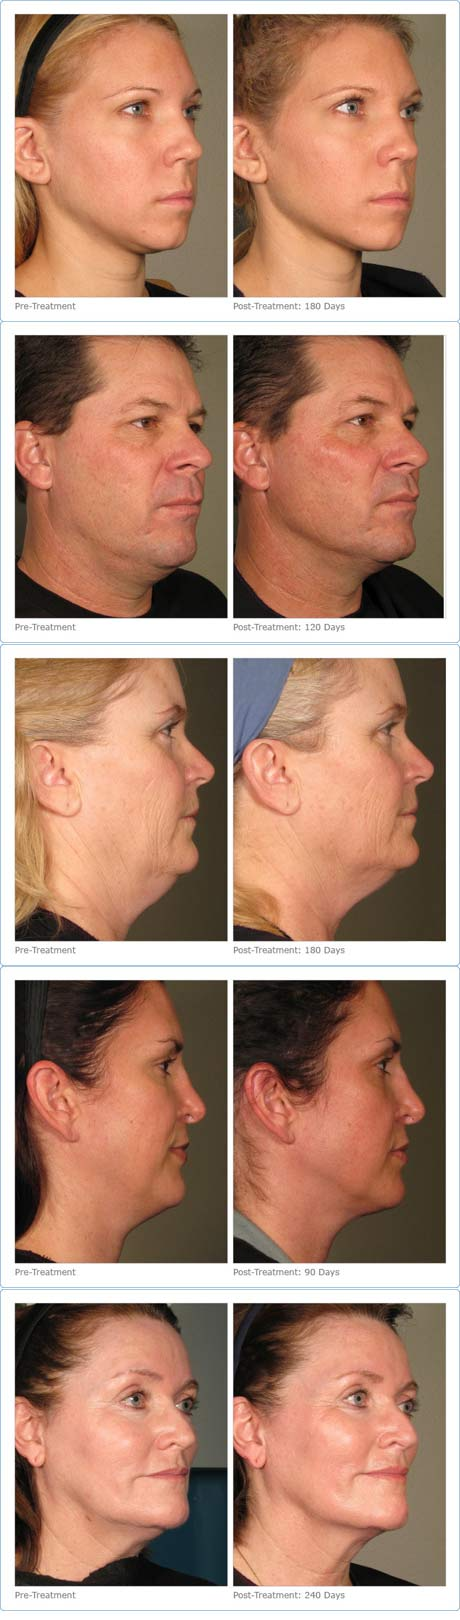 Rox Spa Ultherapy Before and After pictures